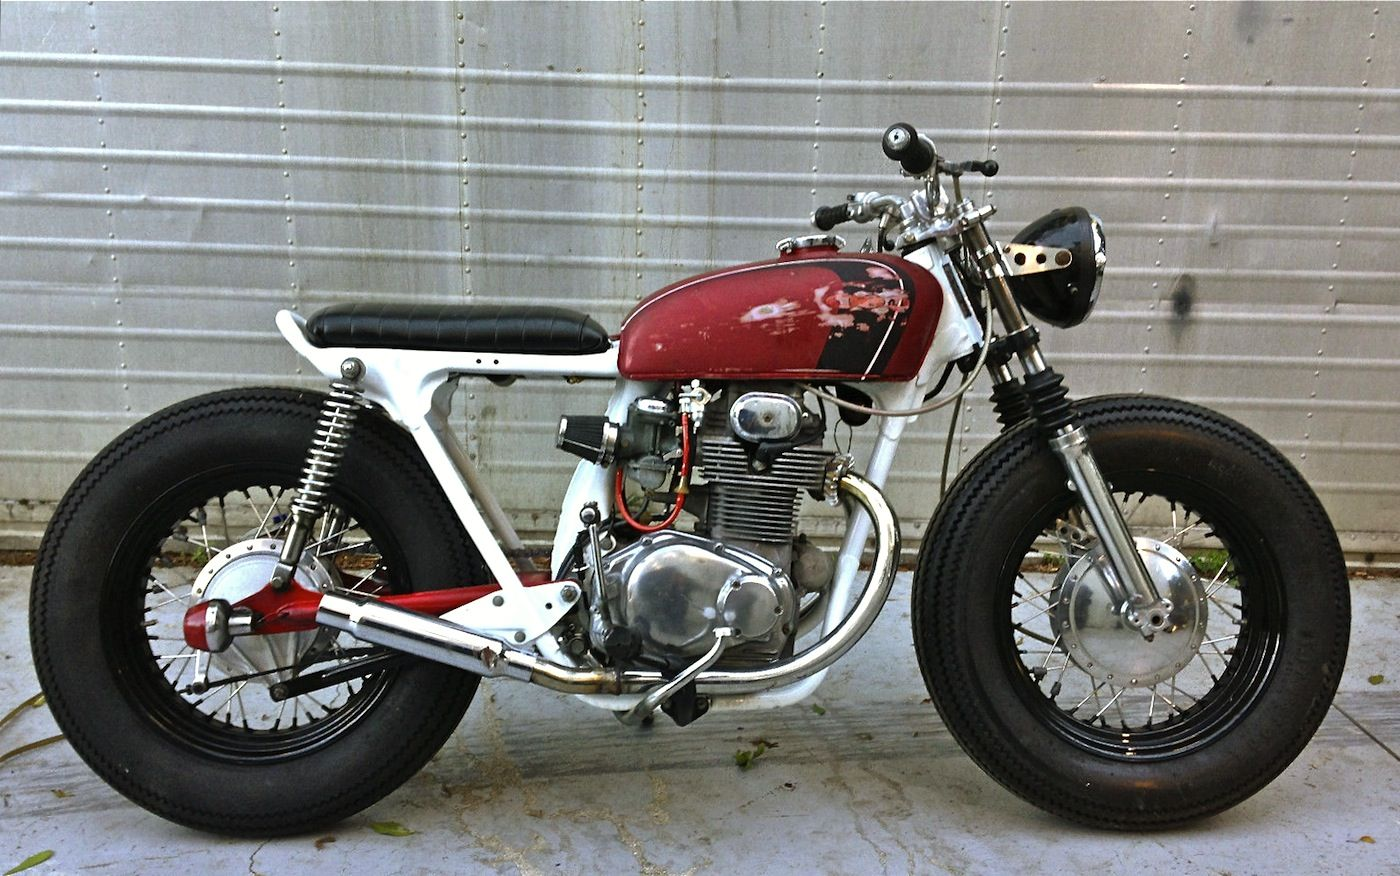 Cb Tracker Bike Build Ideas Pinterest Honda And Cafe Motorcycle Engine Specifications Custom 1972 Cb350k Twin By Top Motorsports Florida Usa Specs Bored To 450cc Pamco Electronic Ignition Made 16 Hd Wheels With